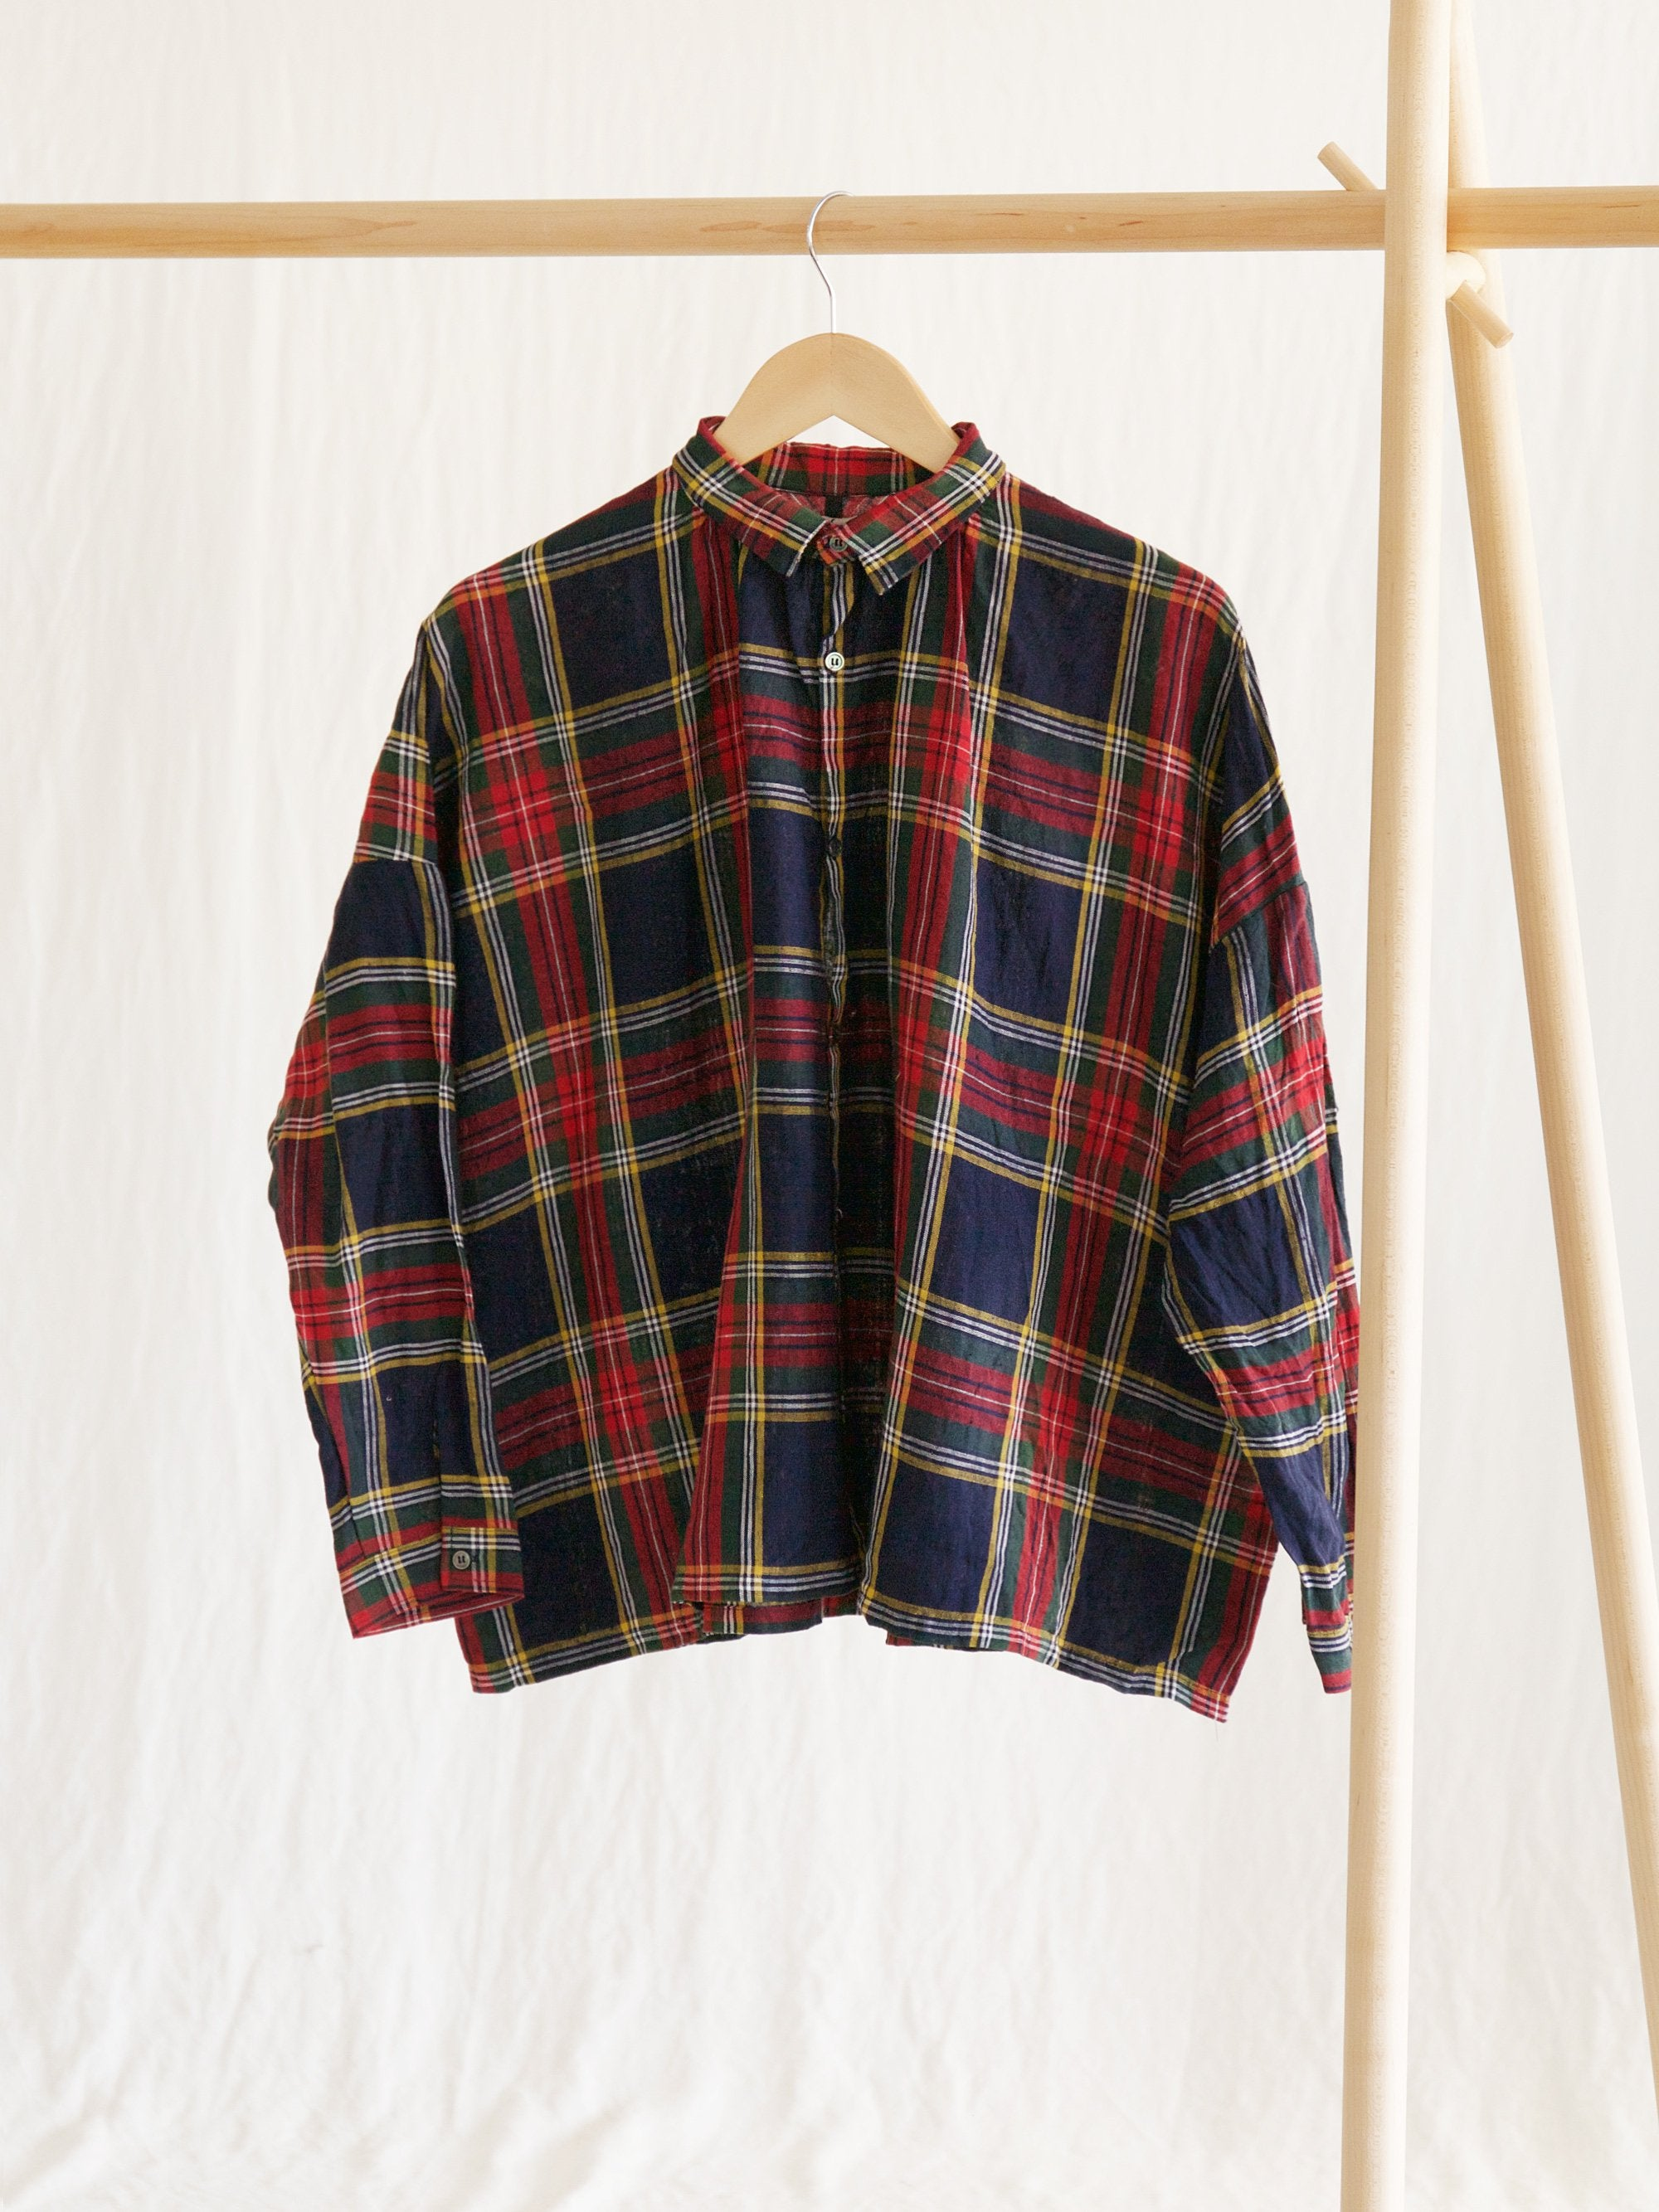 Namu Shop - Ichi Antiquites Linen Tartan Check Gather Shirt - Navy